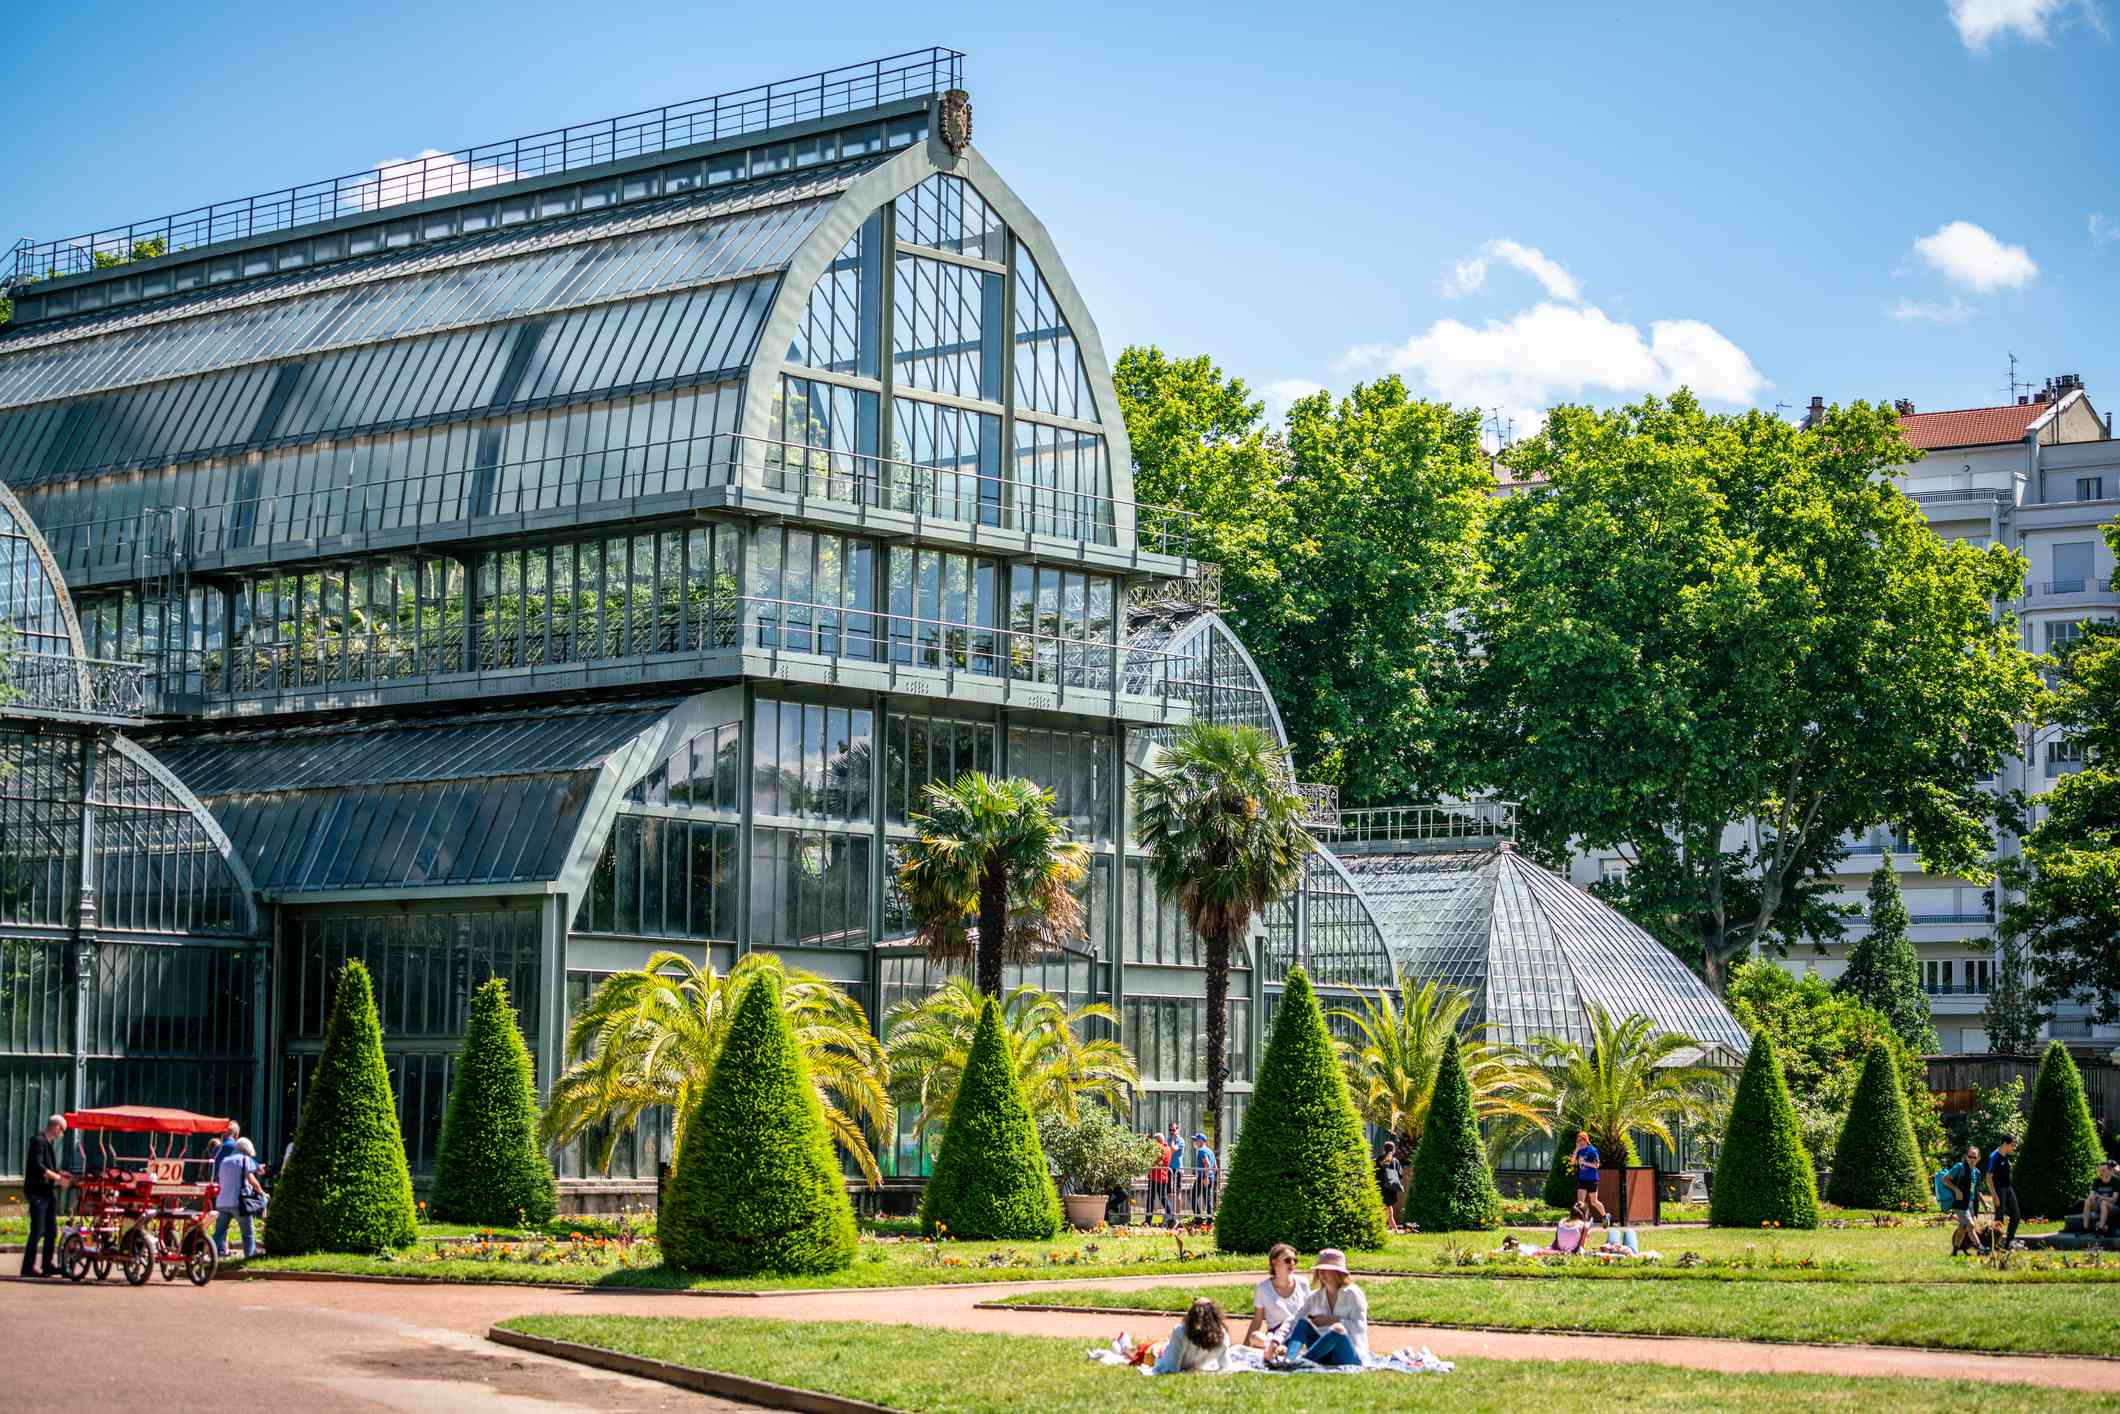 View of the Grande Serres or large greenhouse of the Parc de la Tete d'or garden in Lyon France